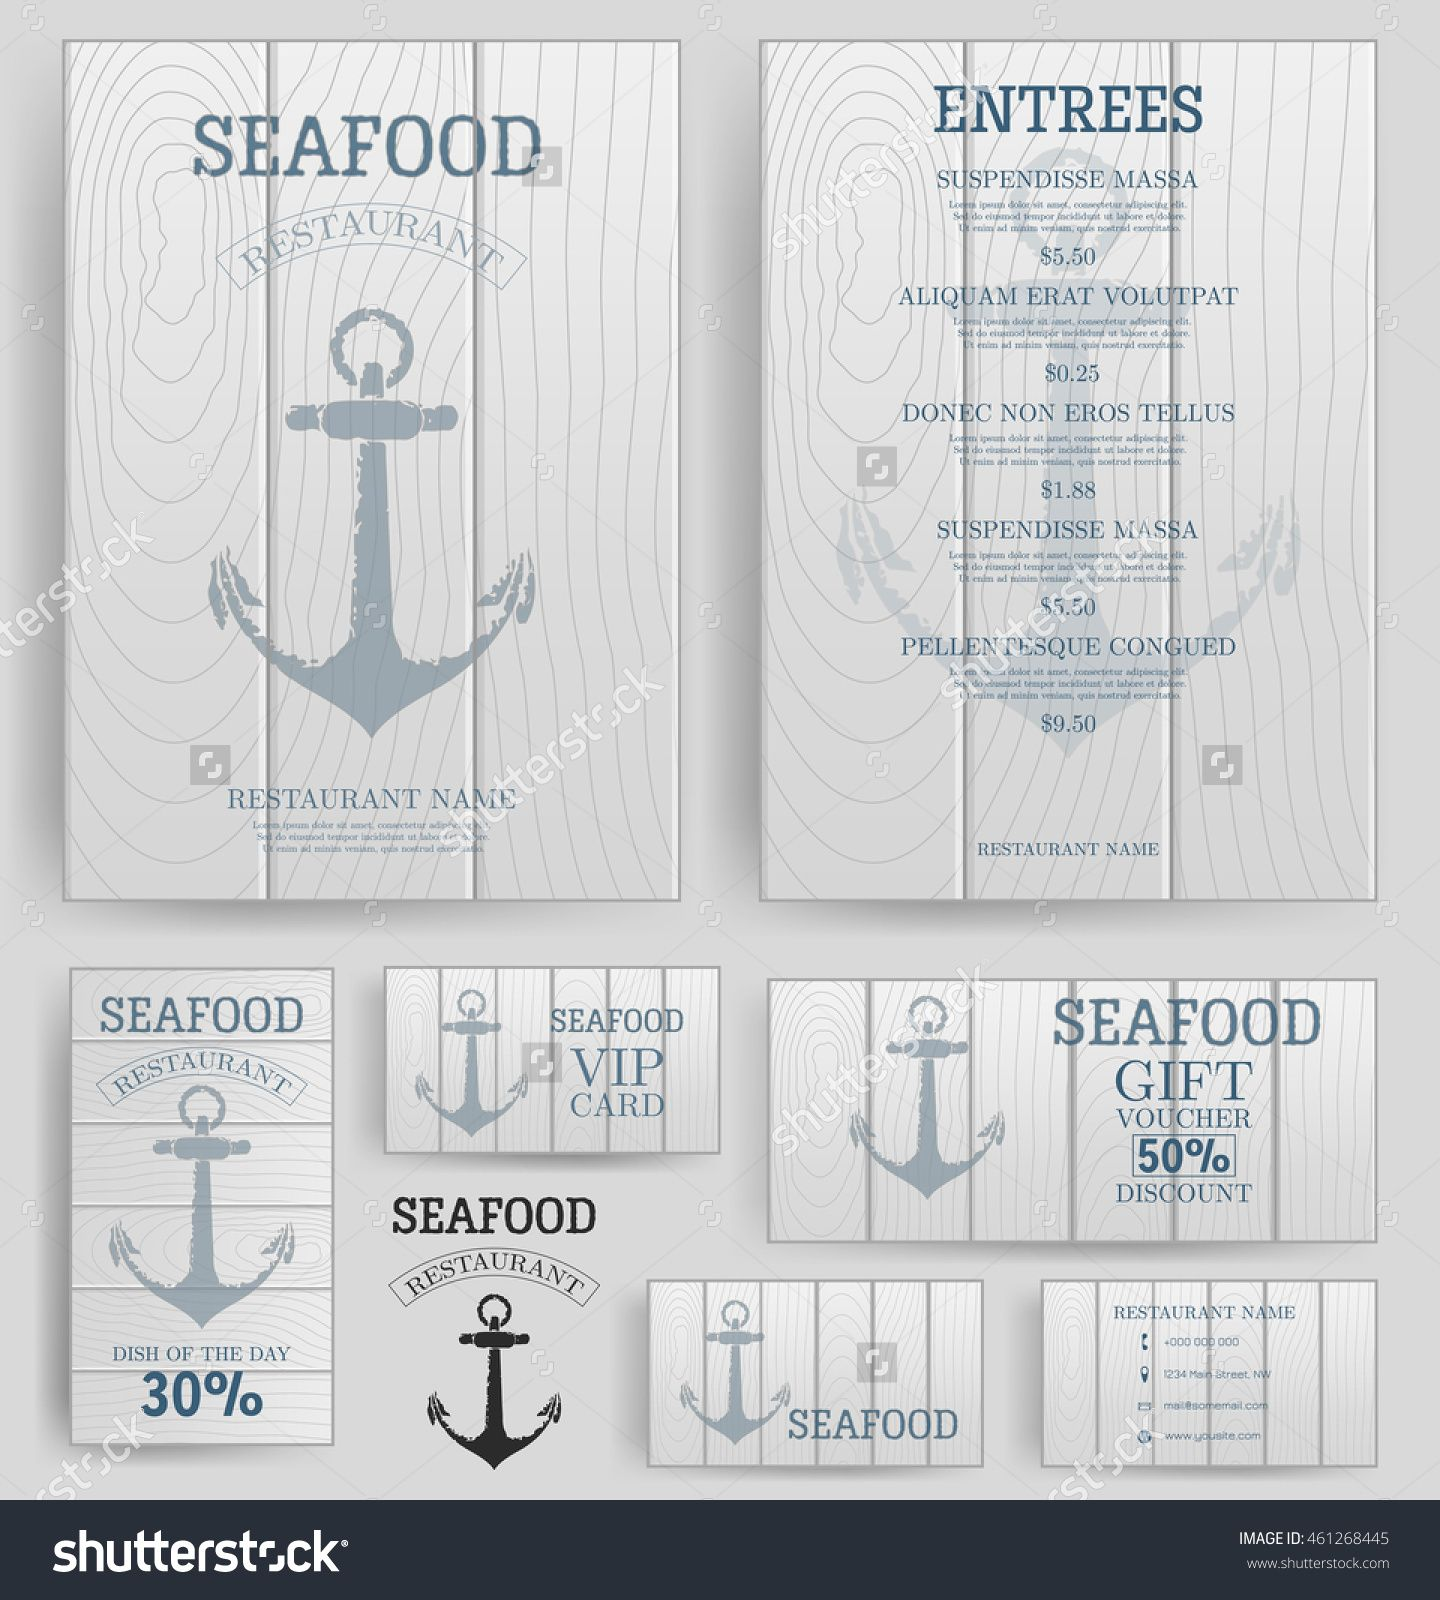 Seafood restaurant menu template anchor on the wooden board seafood restaurant menu template anchor on the wooden board branding business card flyer vip card and gift voucher vector wajeb Choice Image